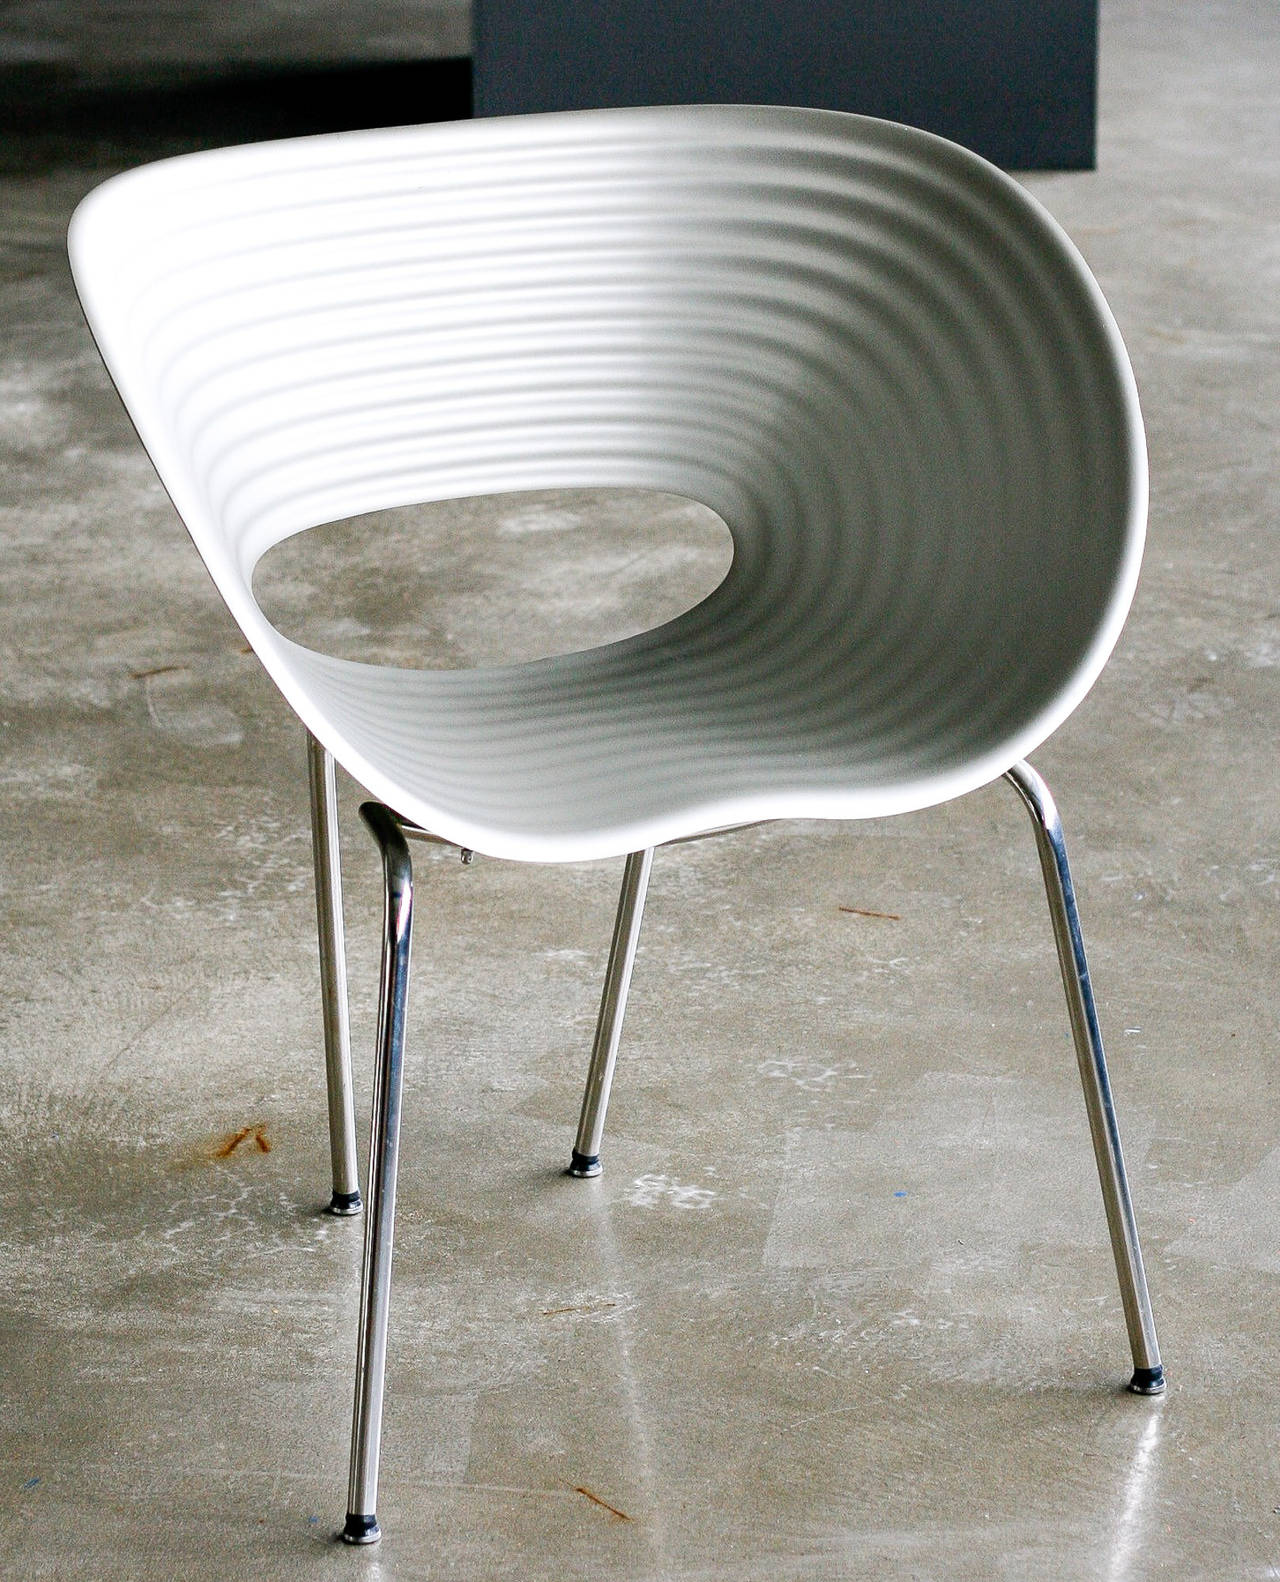 Rare Aluminum Tom Vac Chair Designed by Ron Arad For Sale at 1stdibs